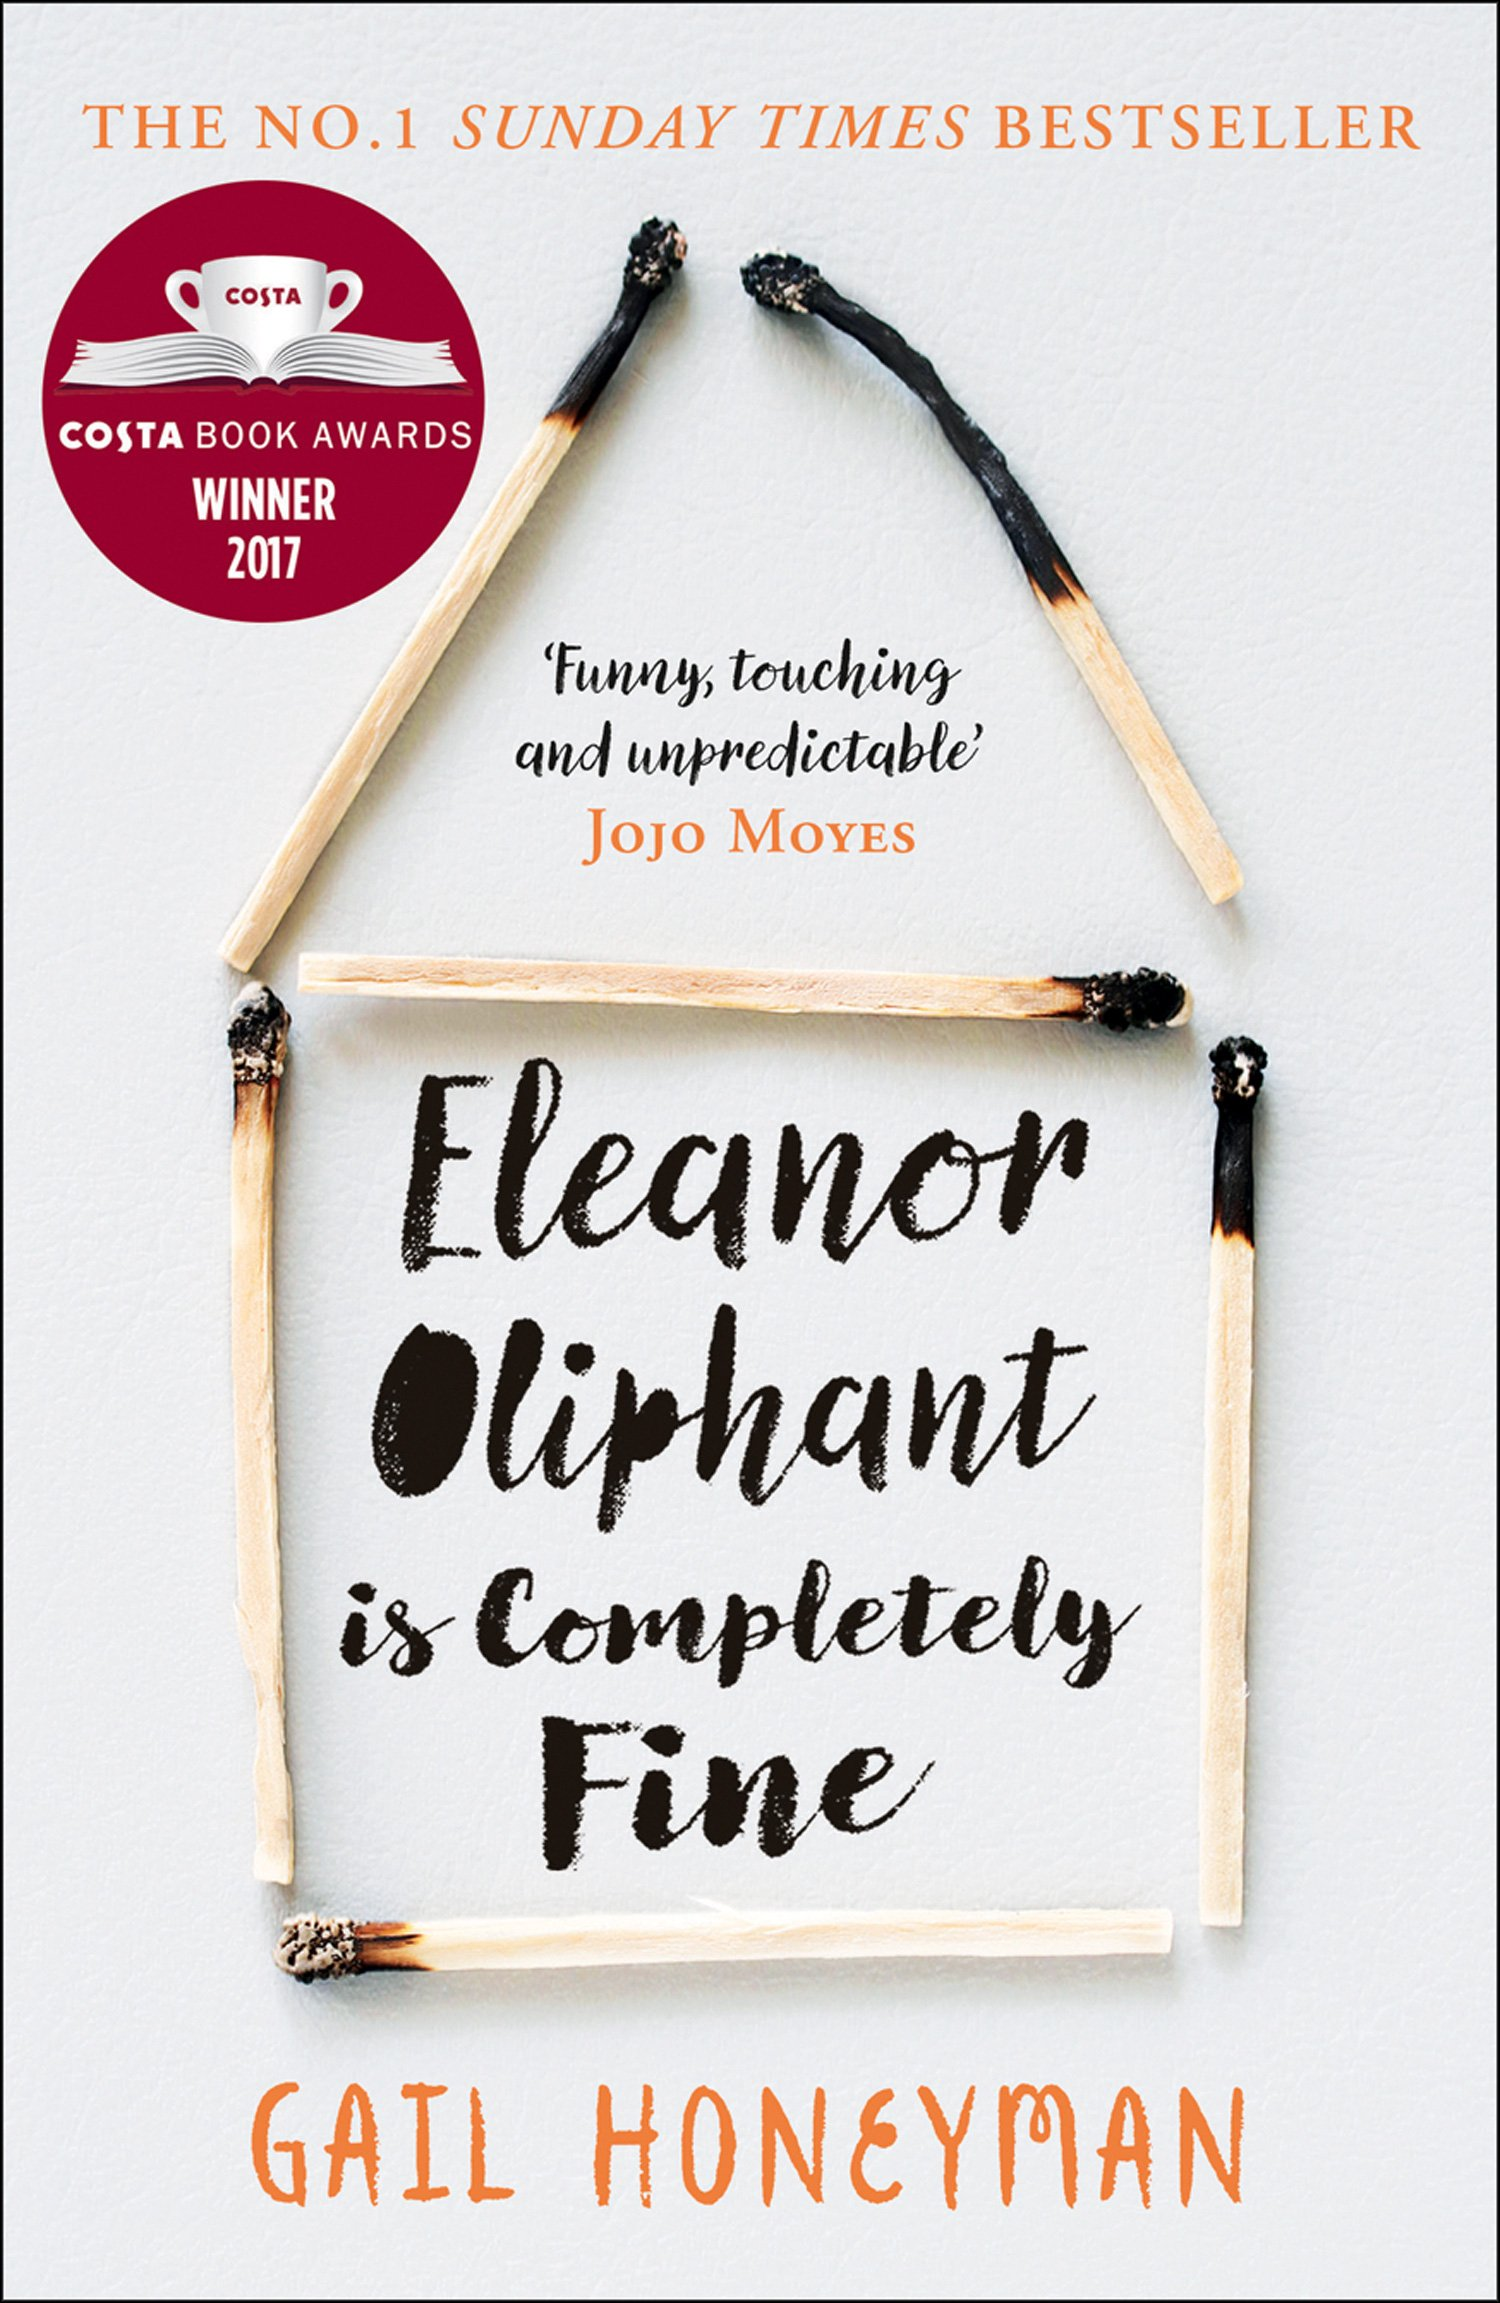 Buy ELEANOR OLIPHANT IS COMPLETELY FINE by Gail Honeyman